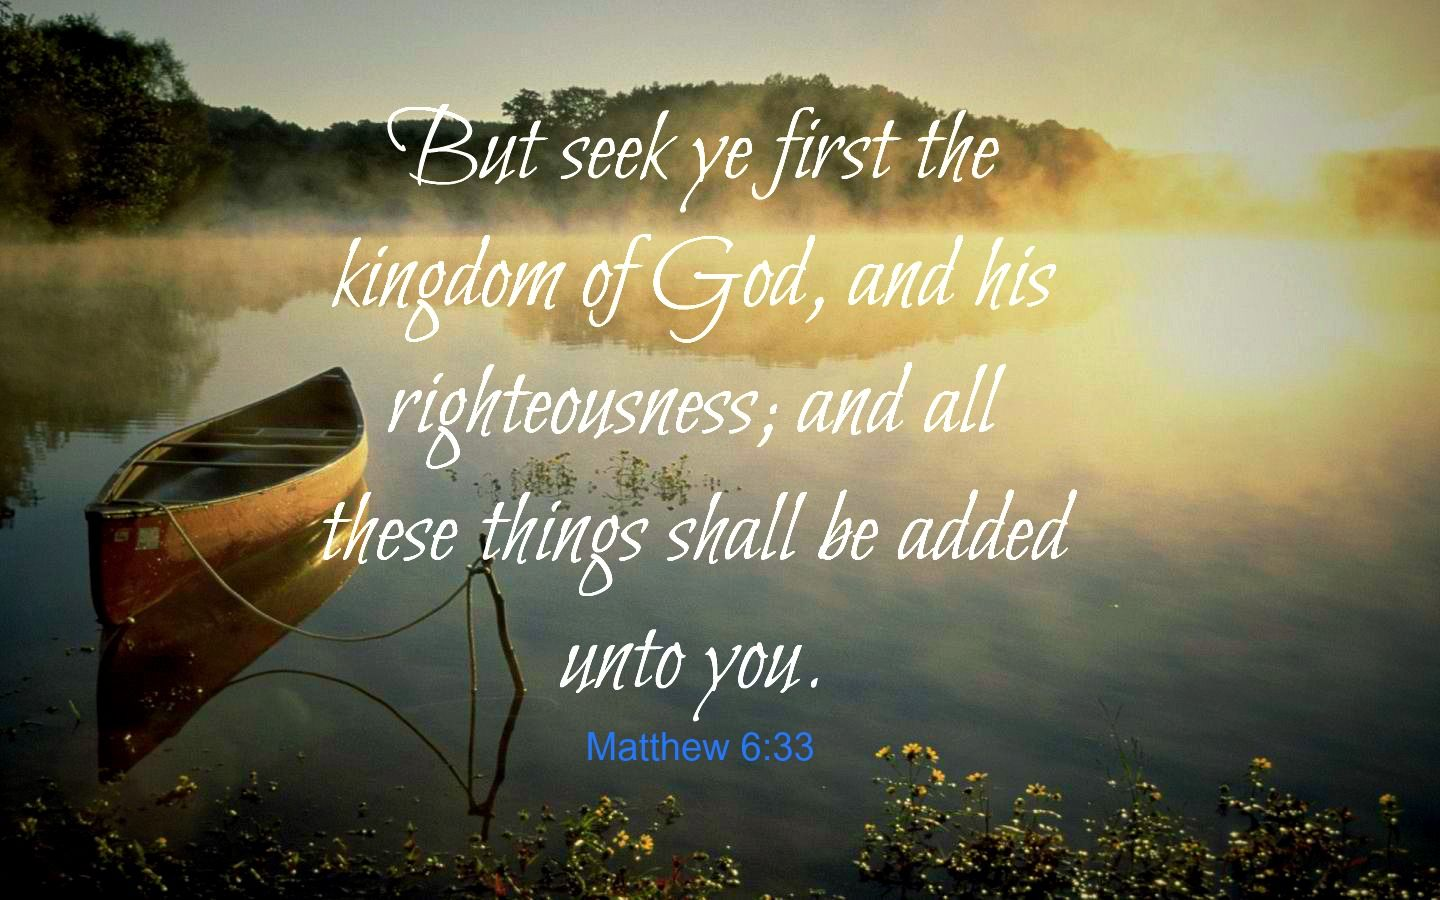 Matthew 6:33 King James Version (KJV) 33 But seek ye first the kingdom of God, and his righteousness;  and all these things shall be added unto you.